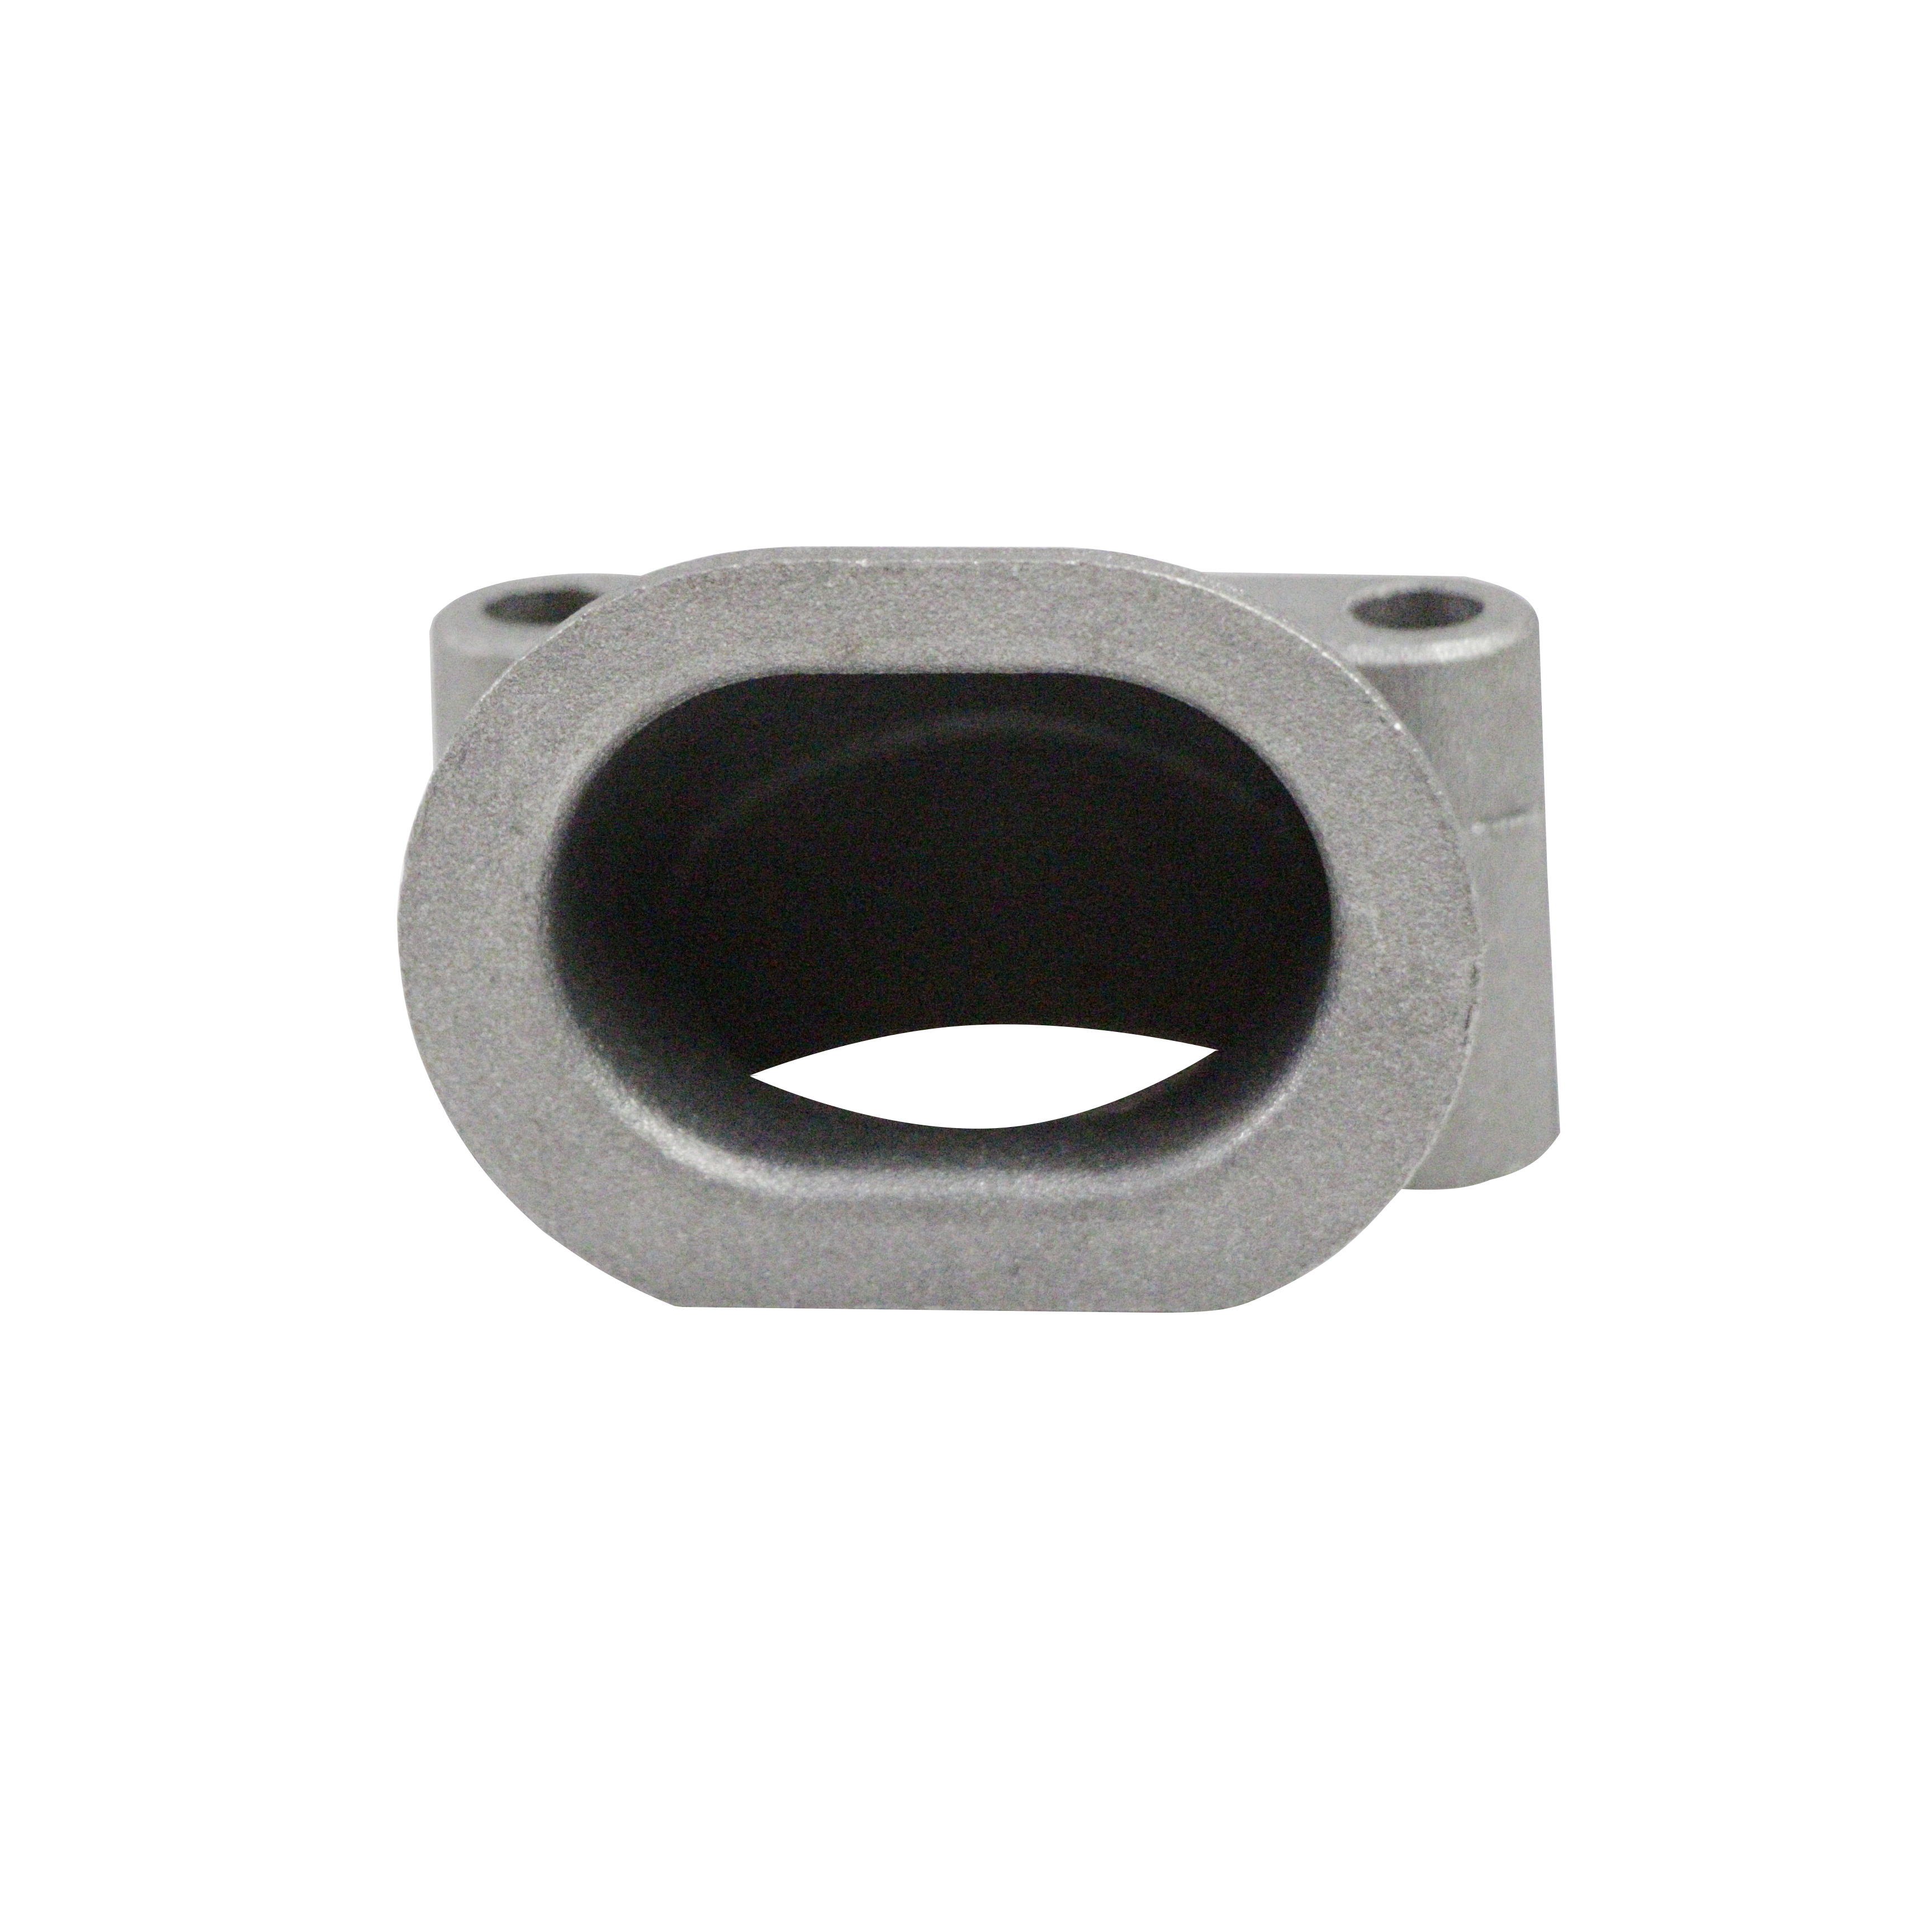 Clutch Sprocket Cover With Guide Bar Plate Bar Nut For STIHL 070 090 Chainsaw